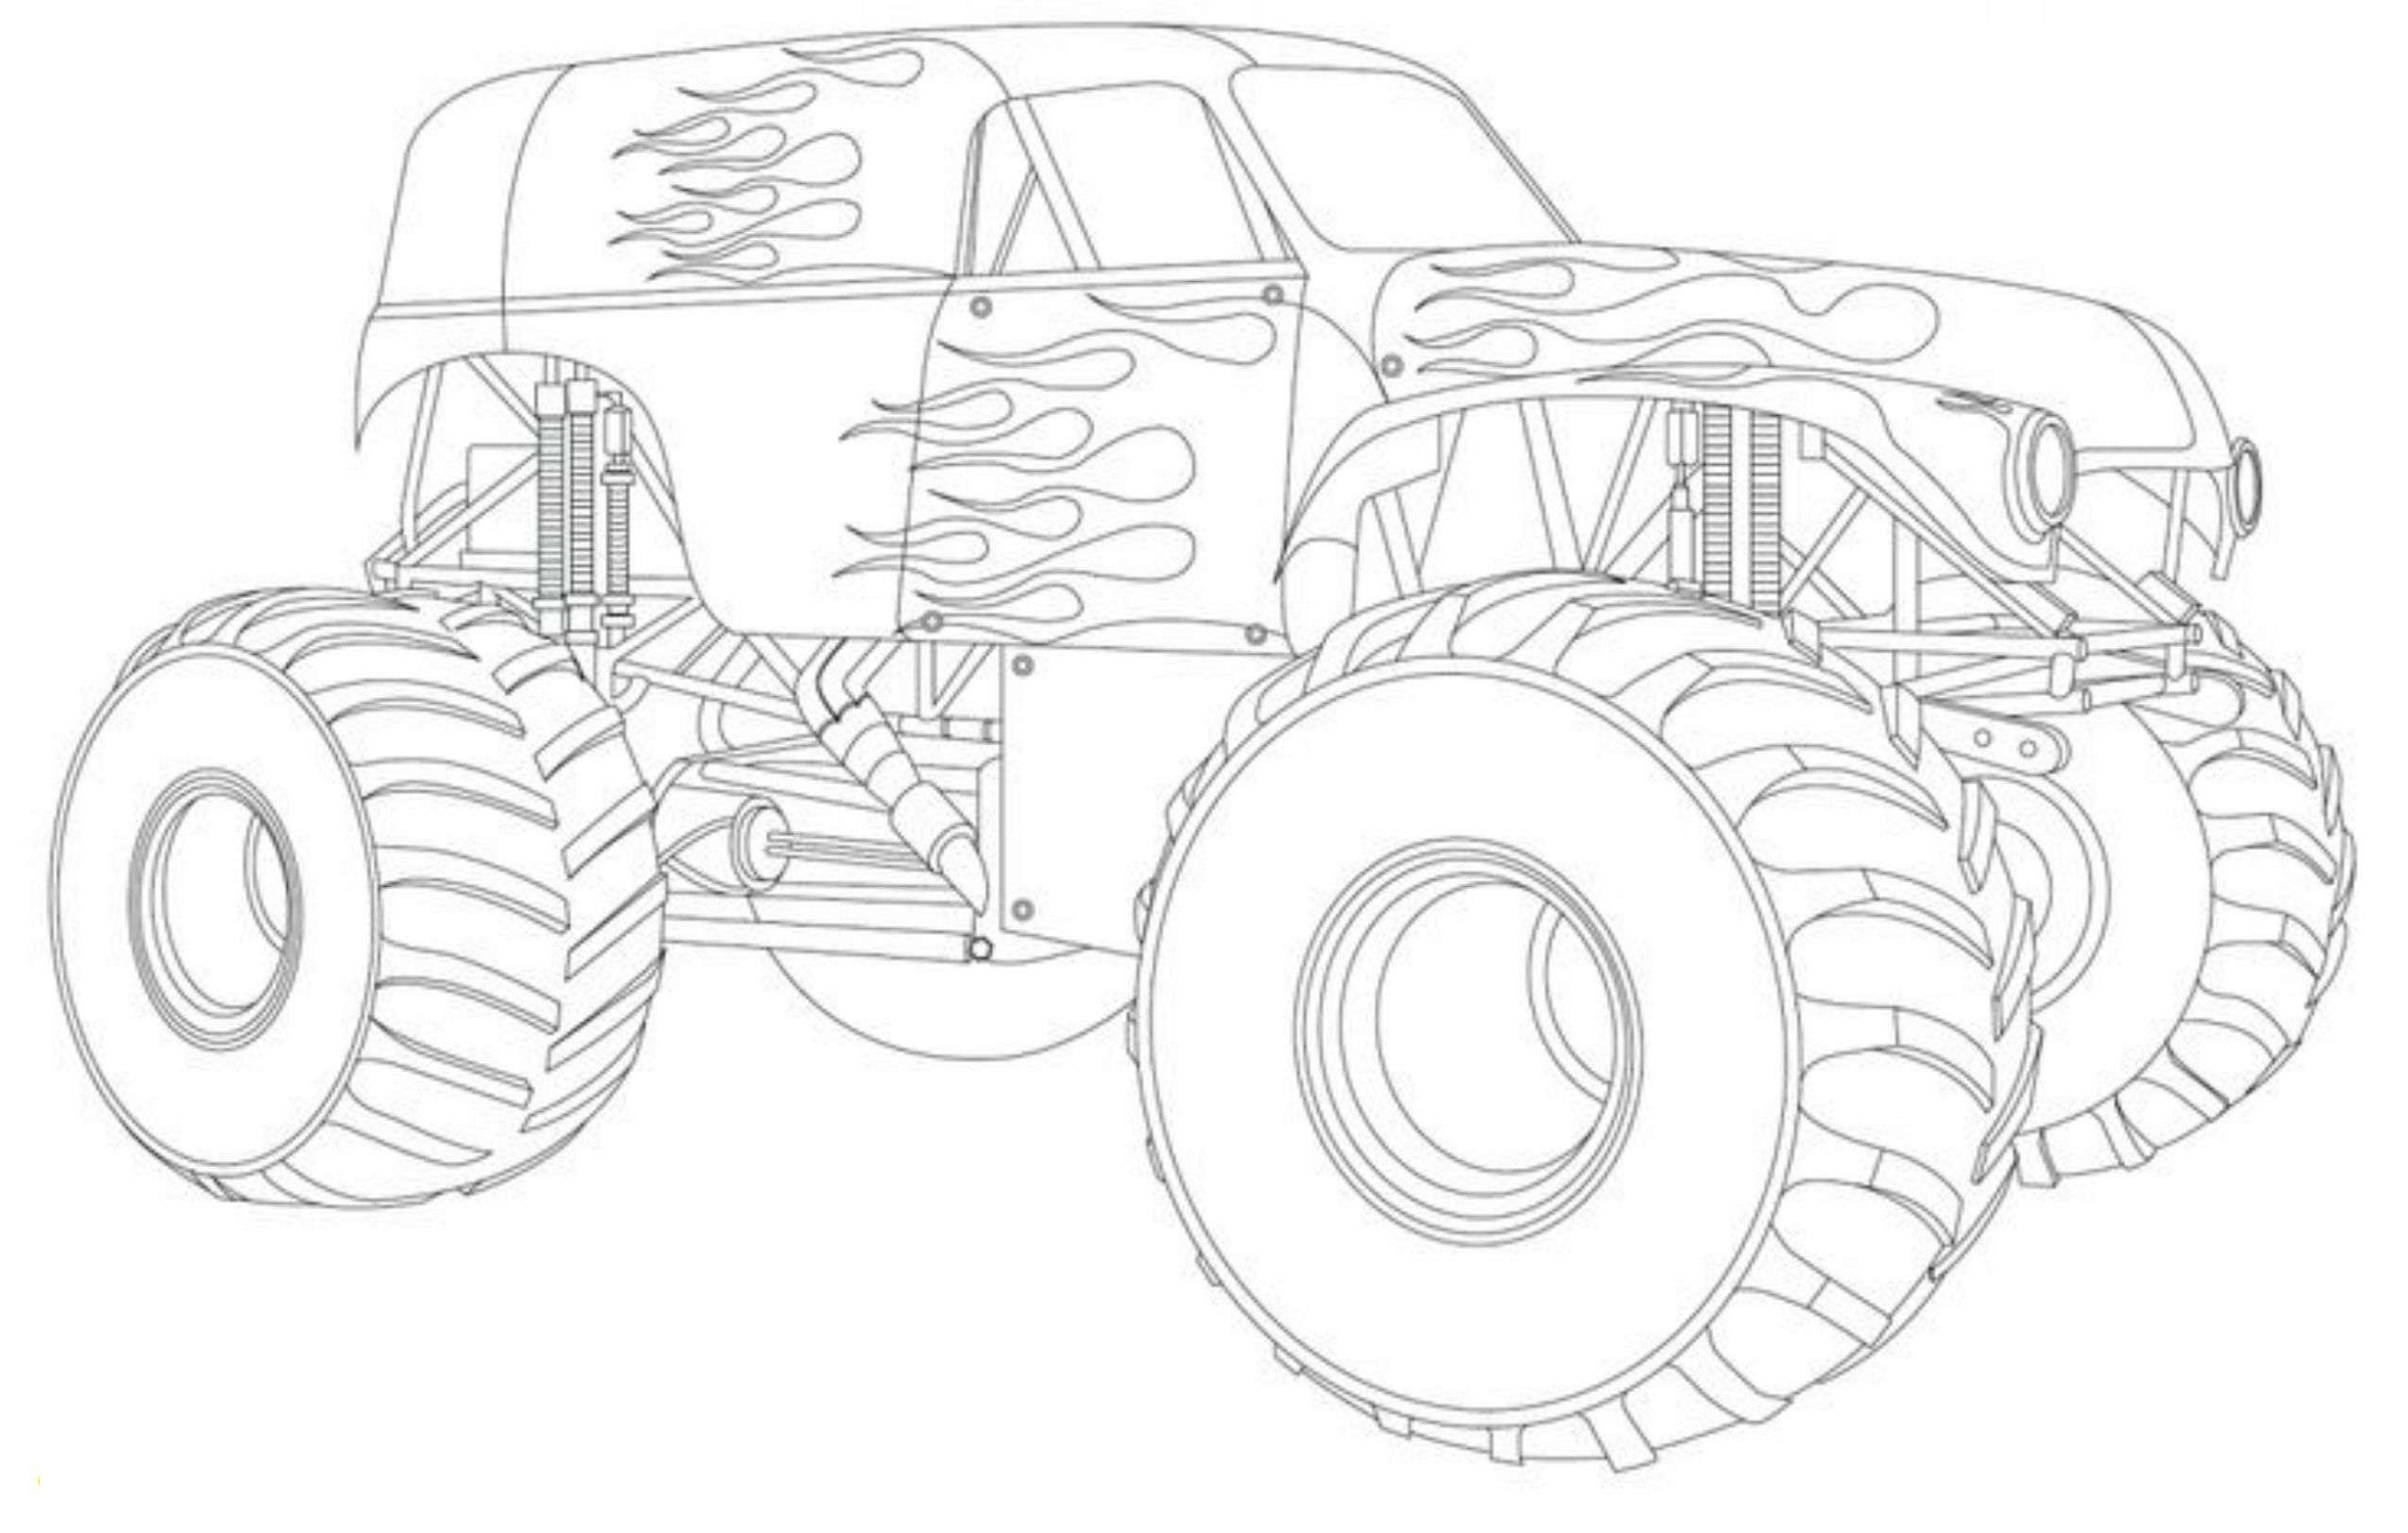 grave digger coloring page grave digger pages printable coloring pages page digger coloring grave